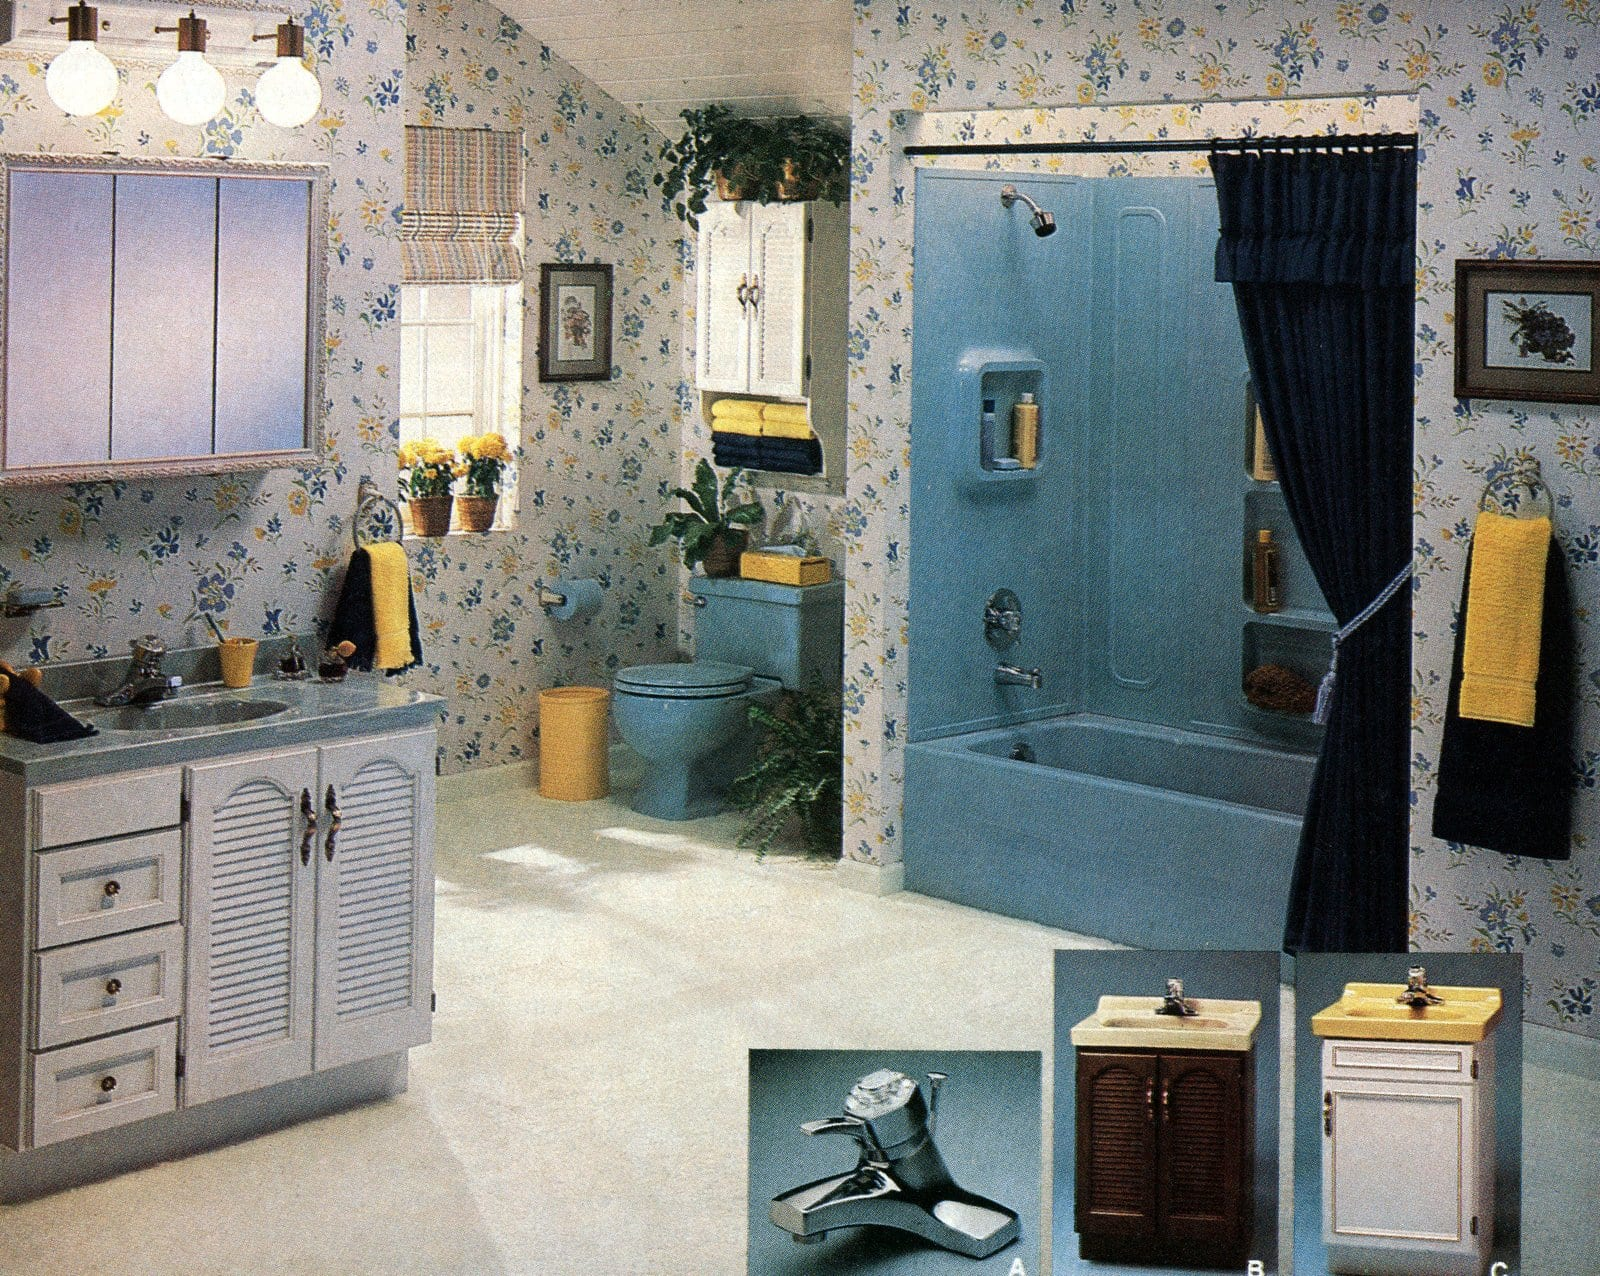 Vintage '80s blue bathroom decor (1981)